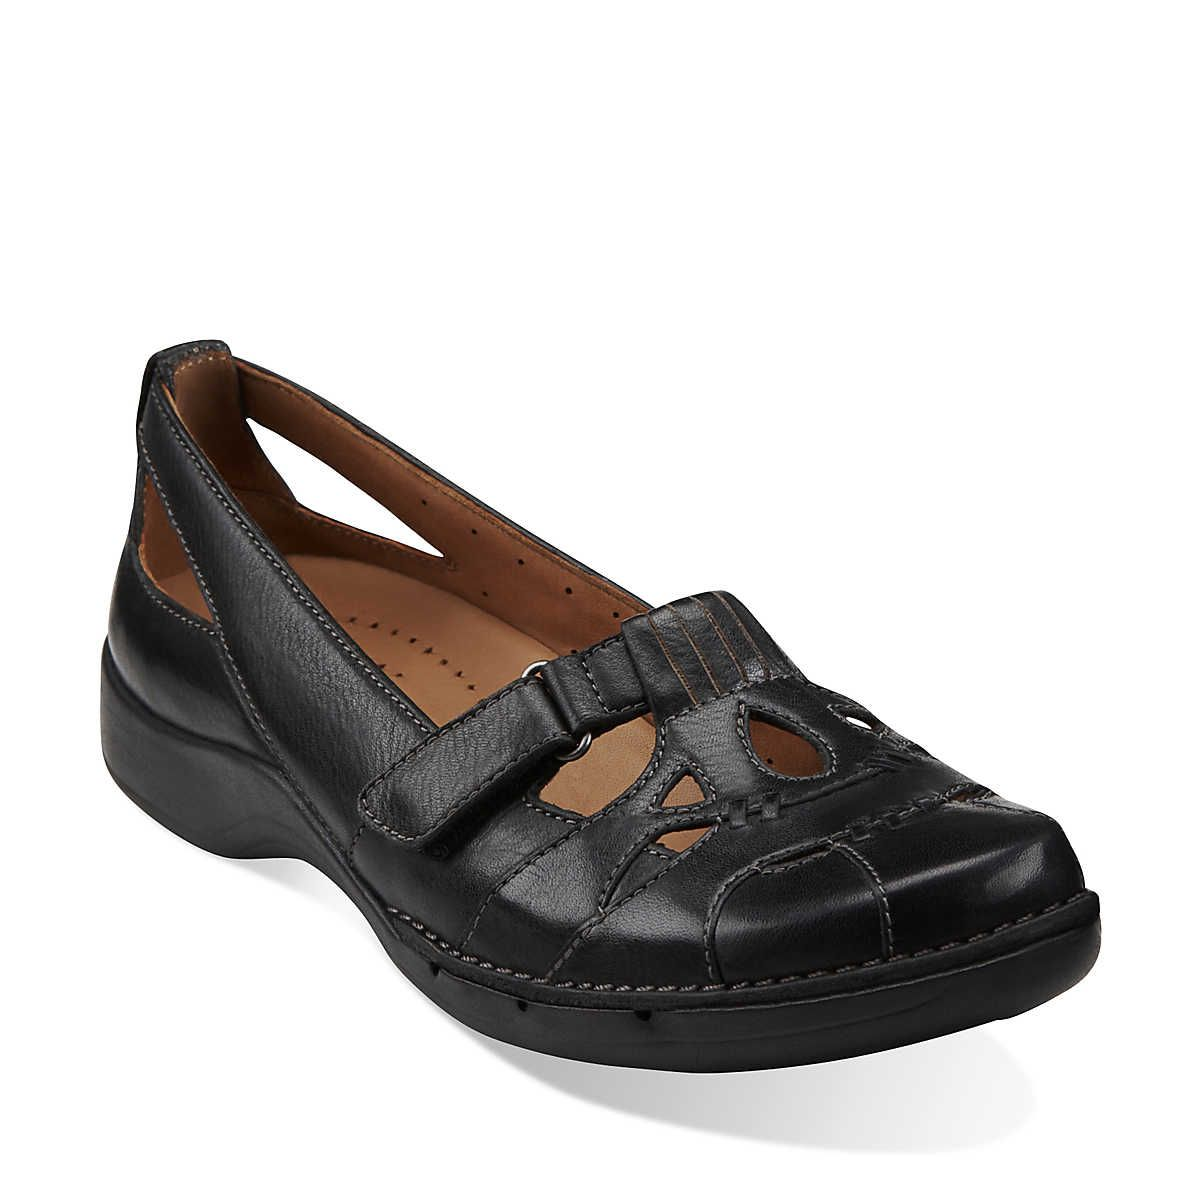 A women's casual shoe you won't want to take off. Crafted of rich